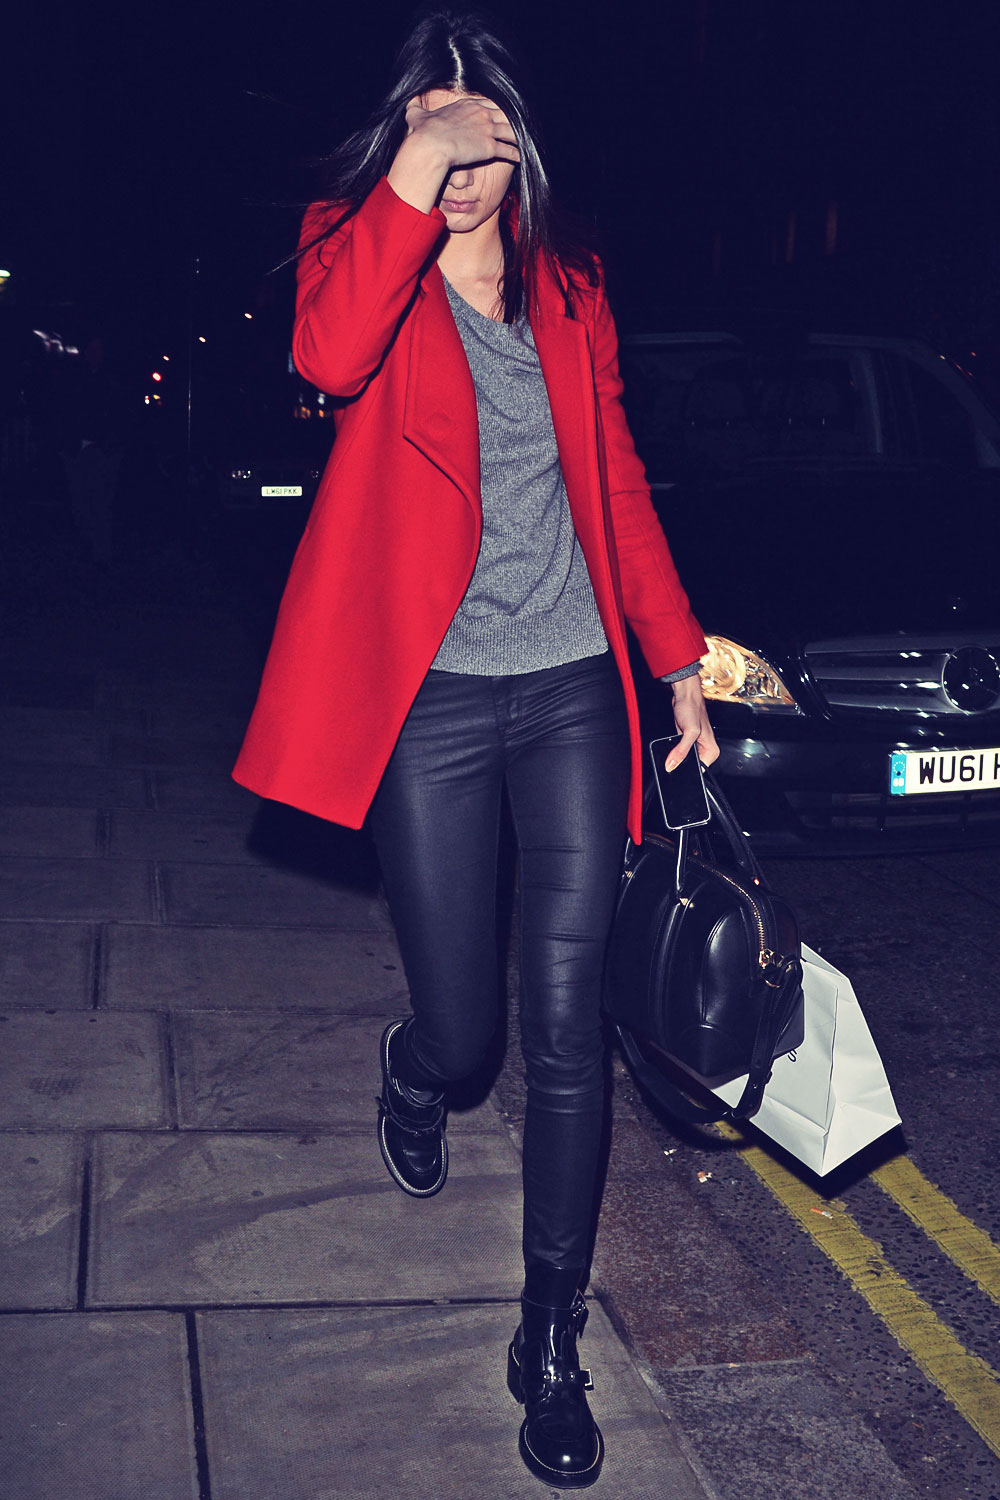 Kendall Jenner at her London hotel